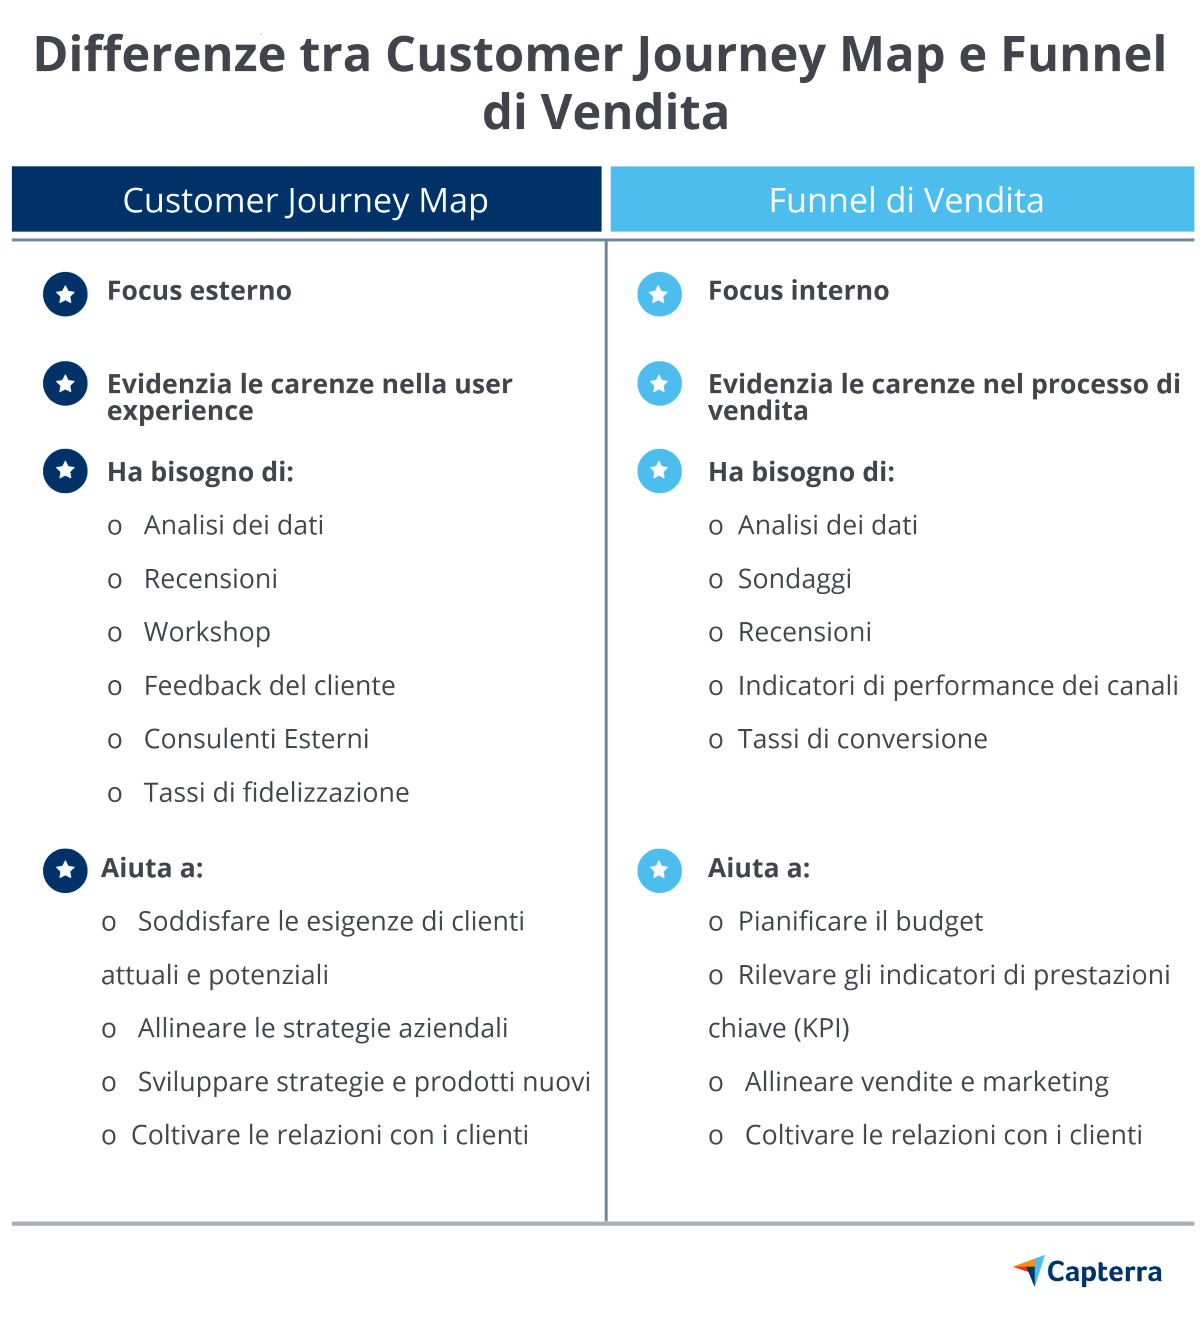 Differenze tra customer journey map e funnel di vendita